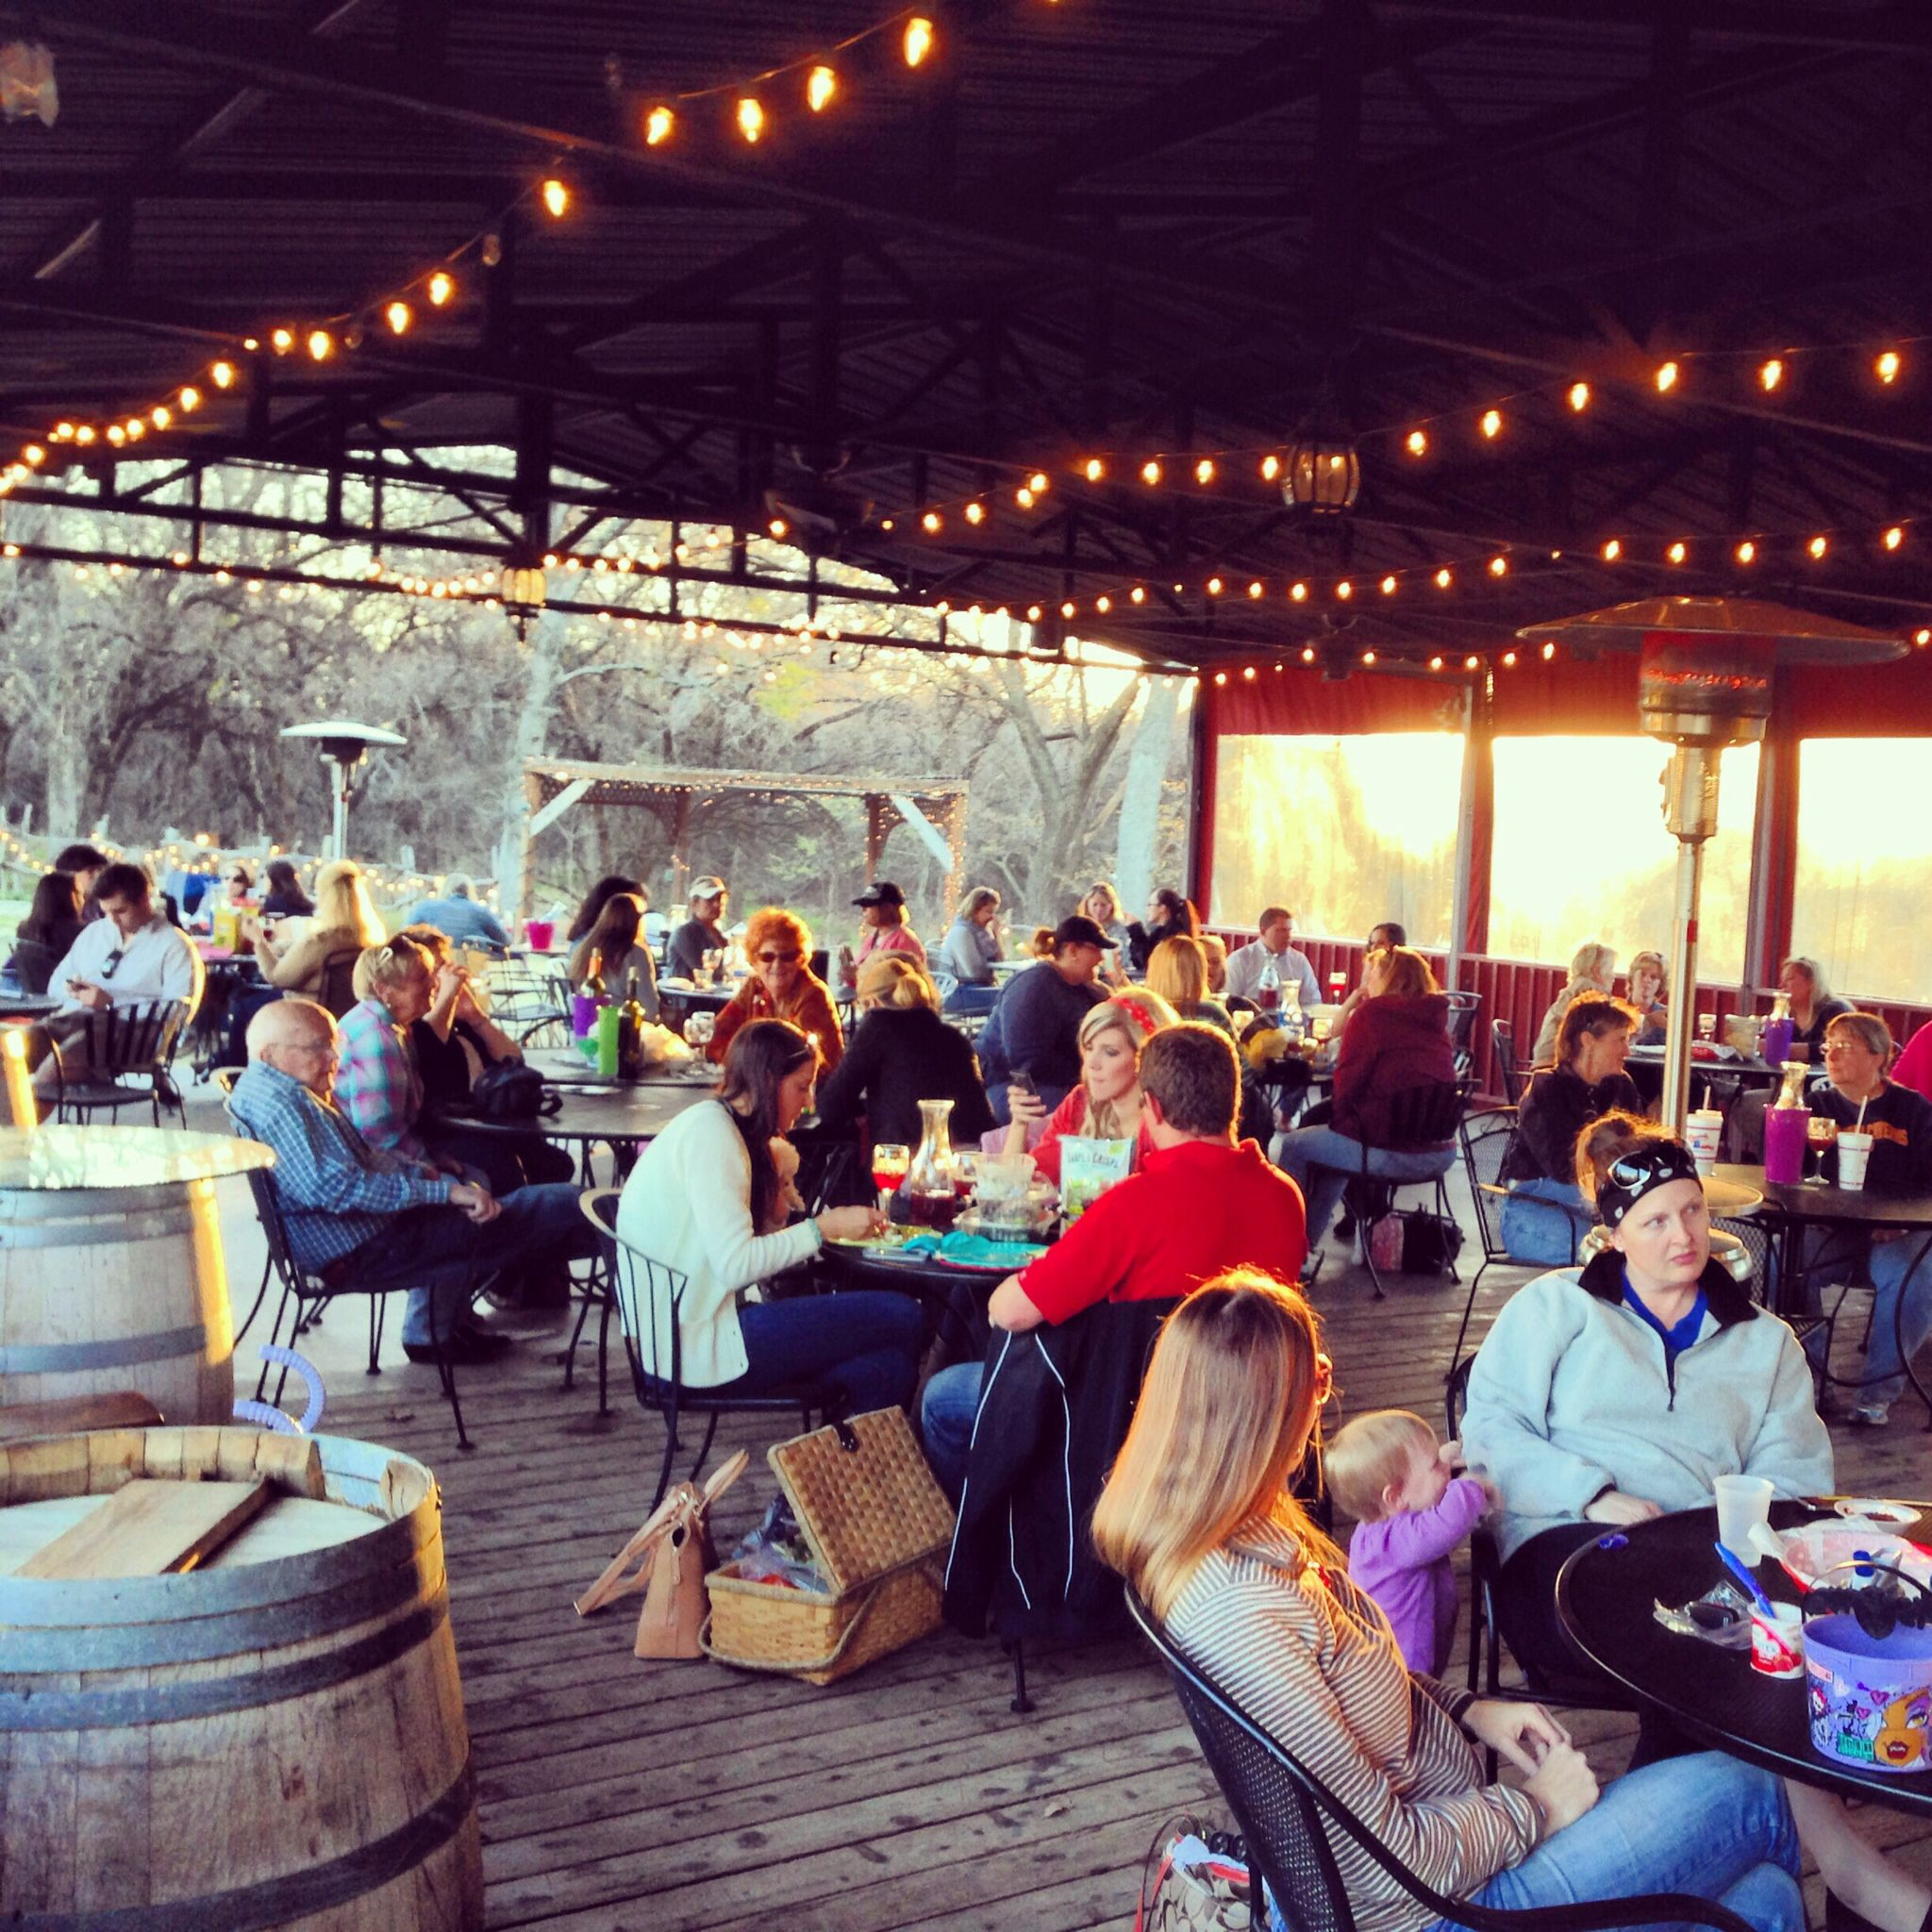 #sangria #thursdays @Lost Inwoods Oak Winery. Come every week from 5-9 and enjoy a glass of your own!